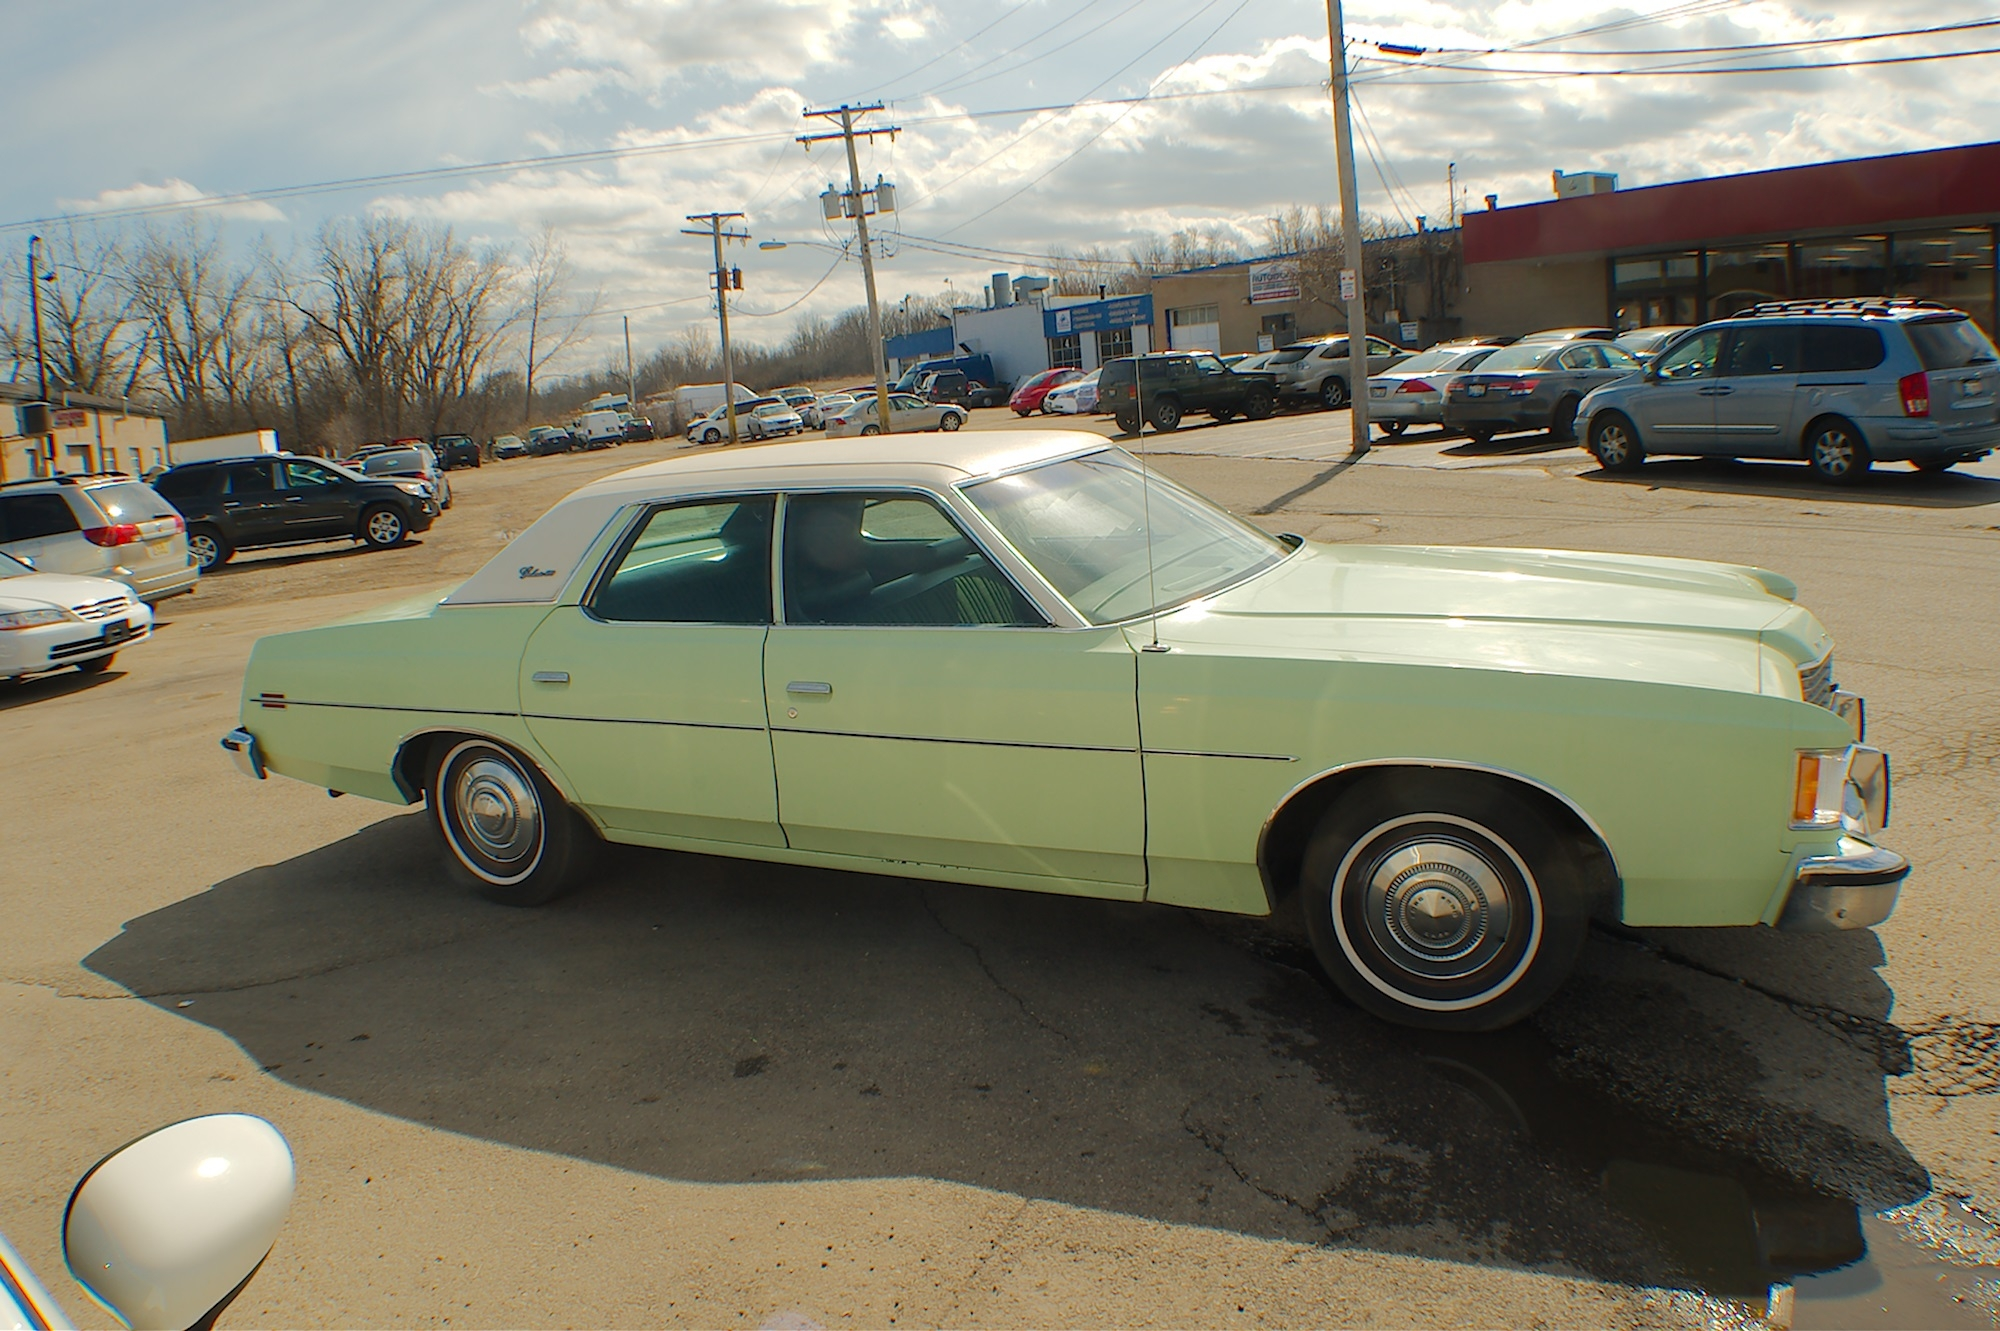 Used Rv Prices >> 1973 Ford Galaxie 500 Green Sedan Used Car Sale